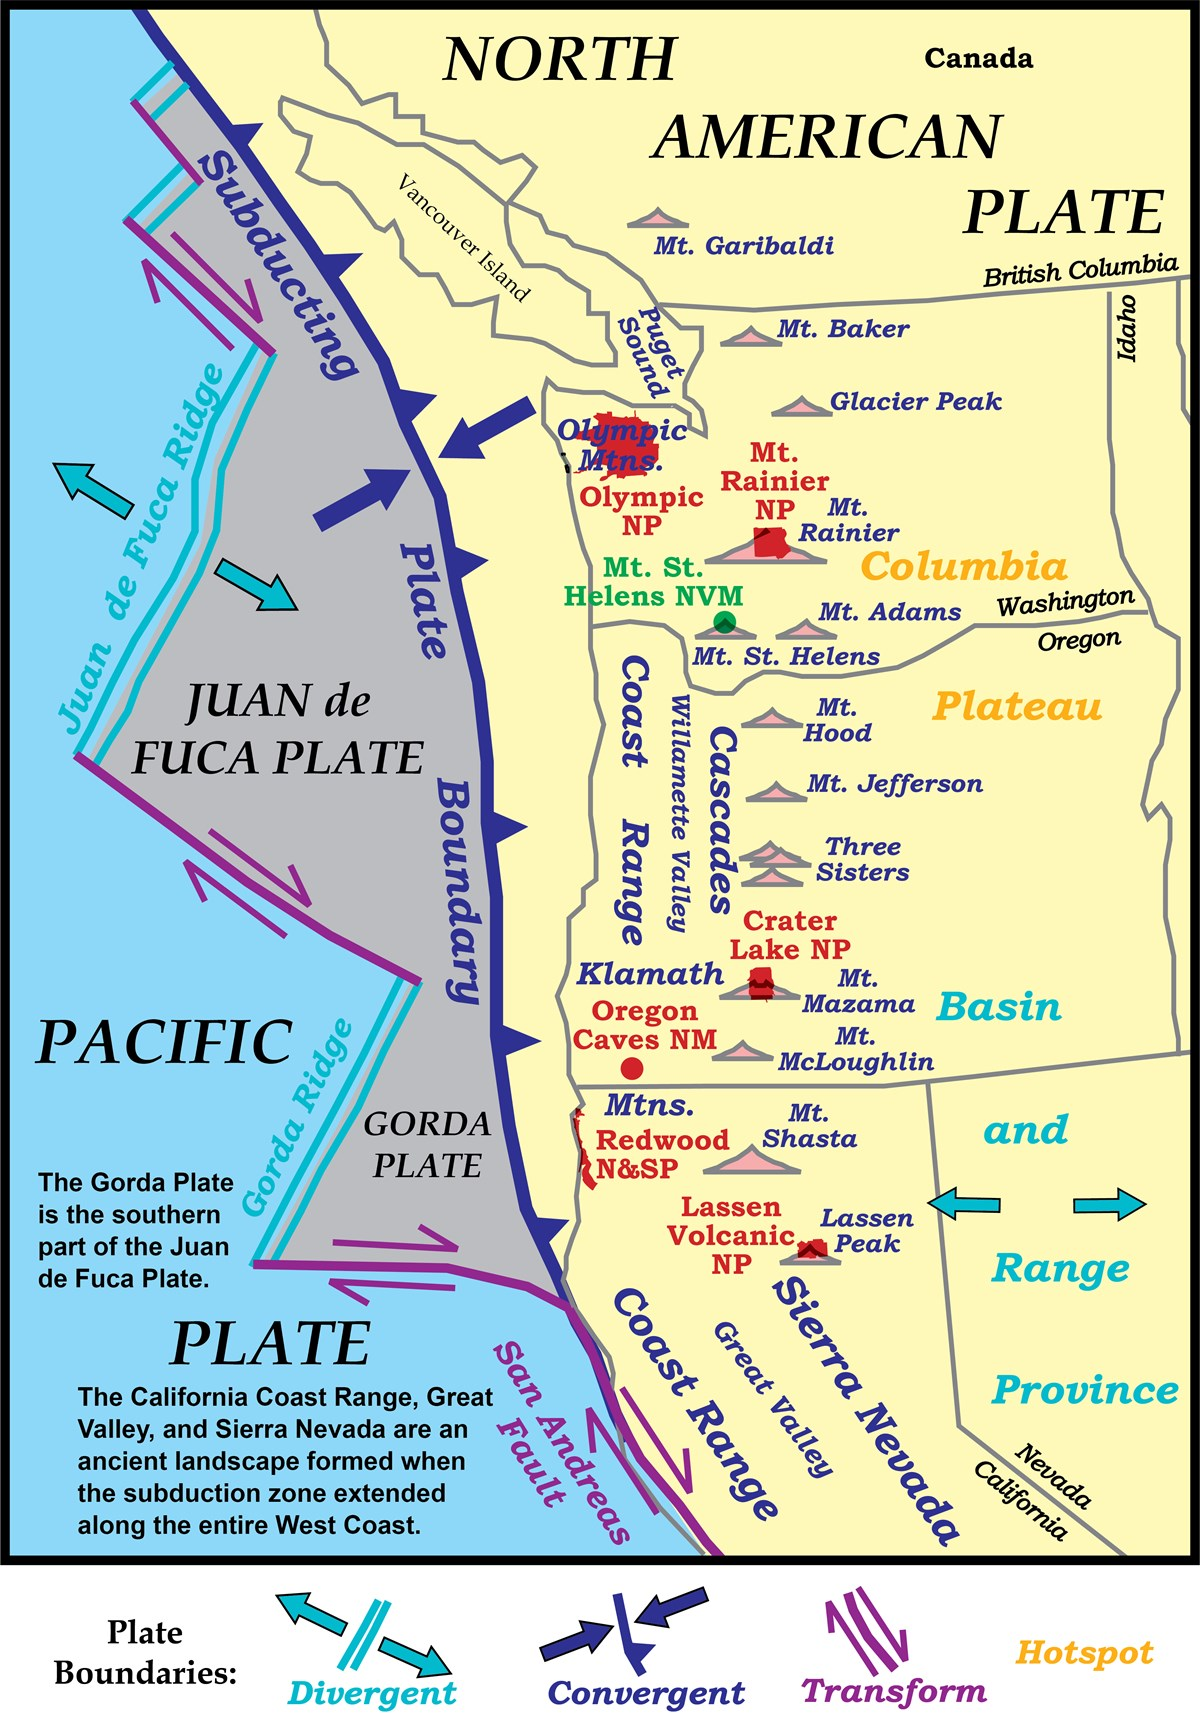 map of the northwest united states showing tectonic plates and volcanoes